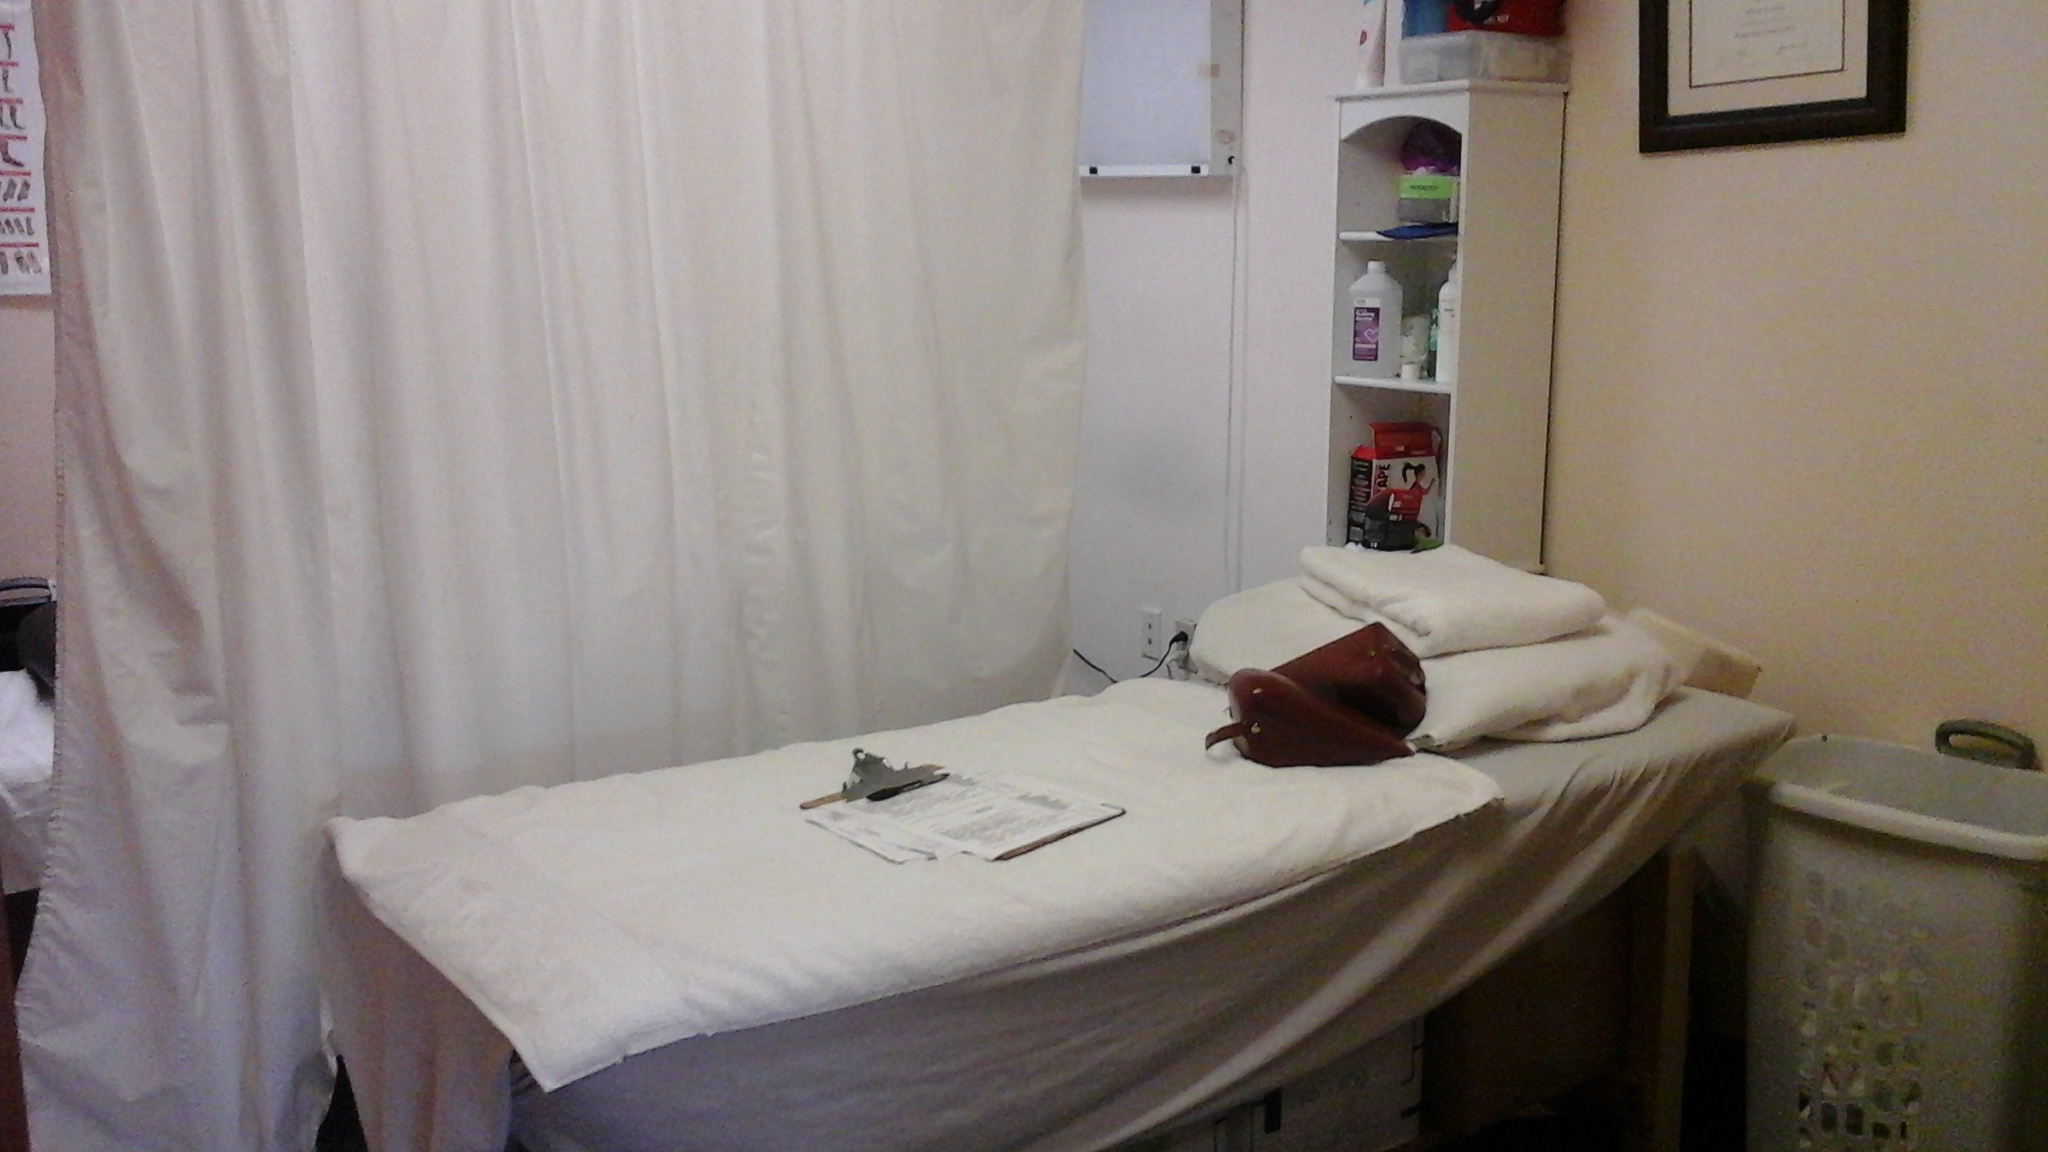 Center for Chiropractic Health Rehabilitation image 2